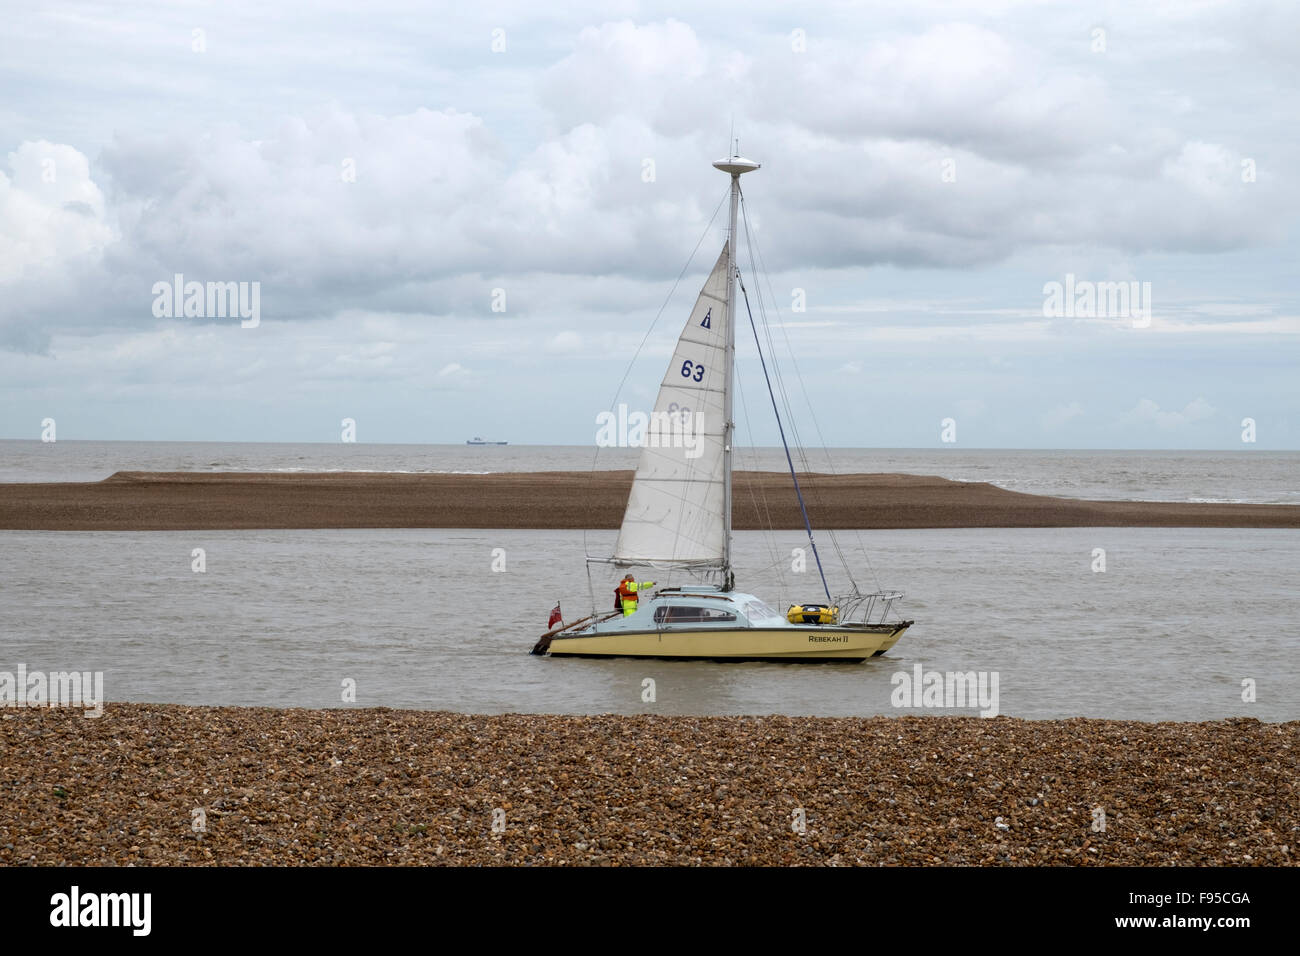 Rebekah II yacht sailing up the river Alde into the North